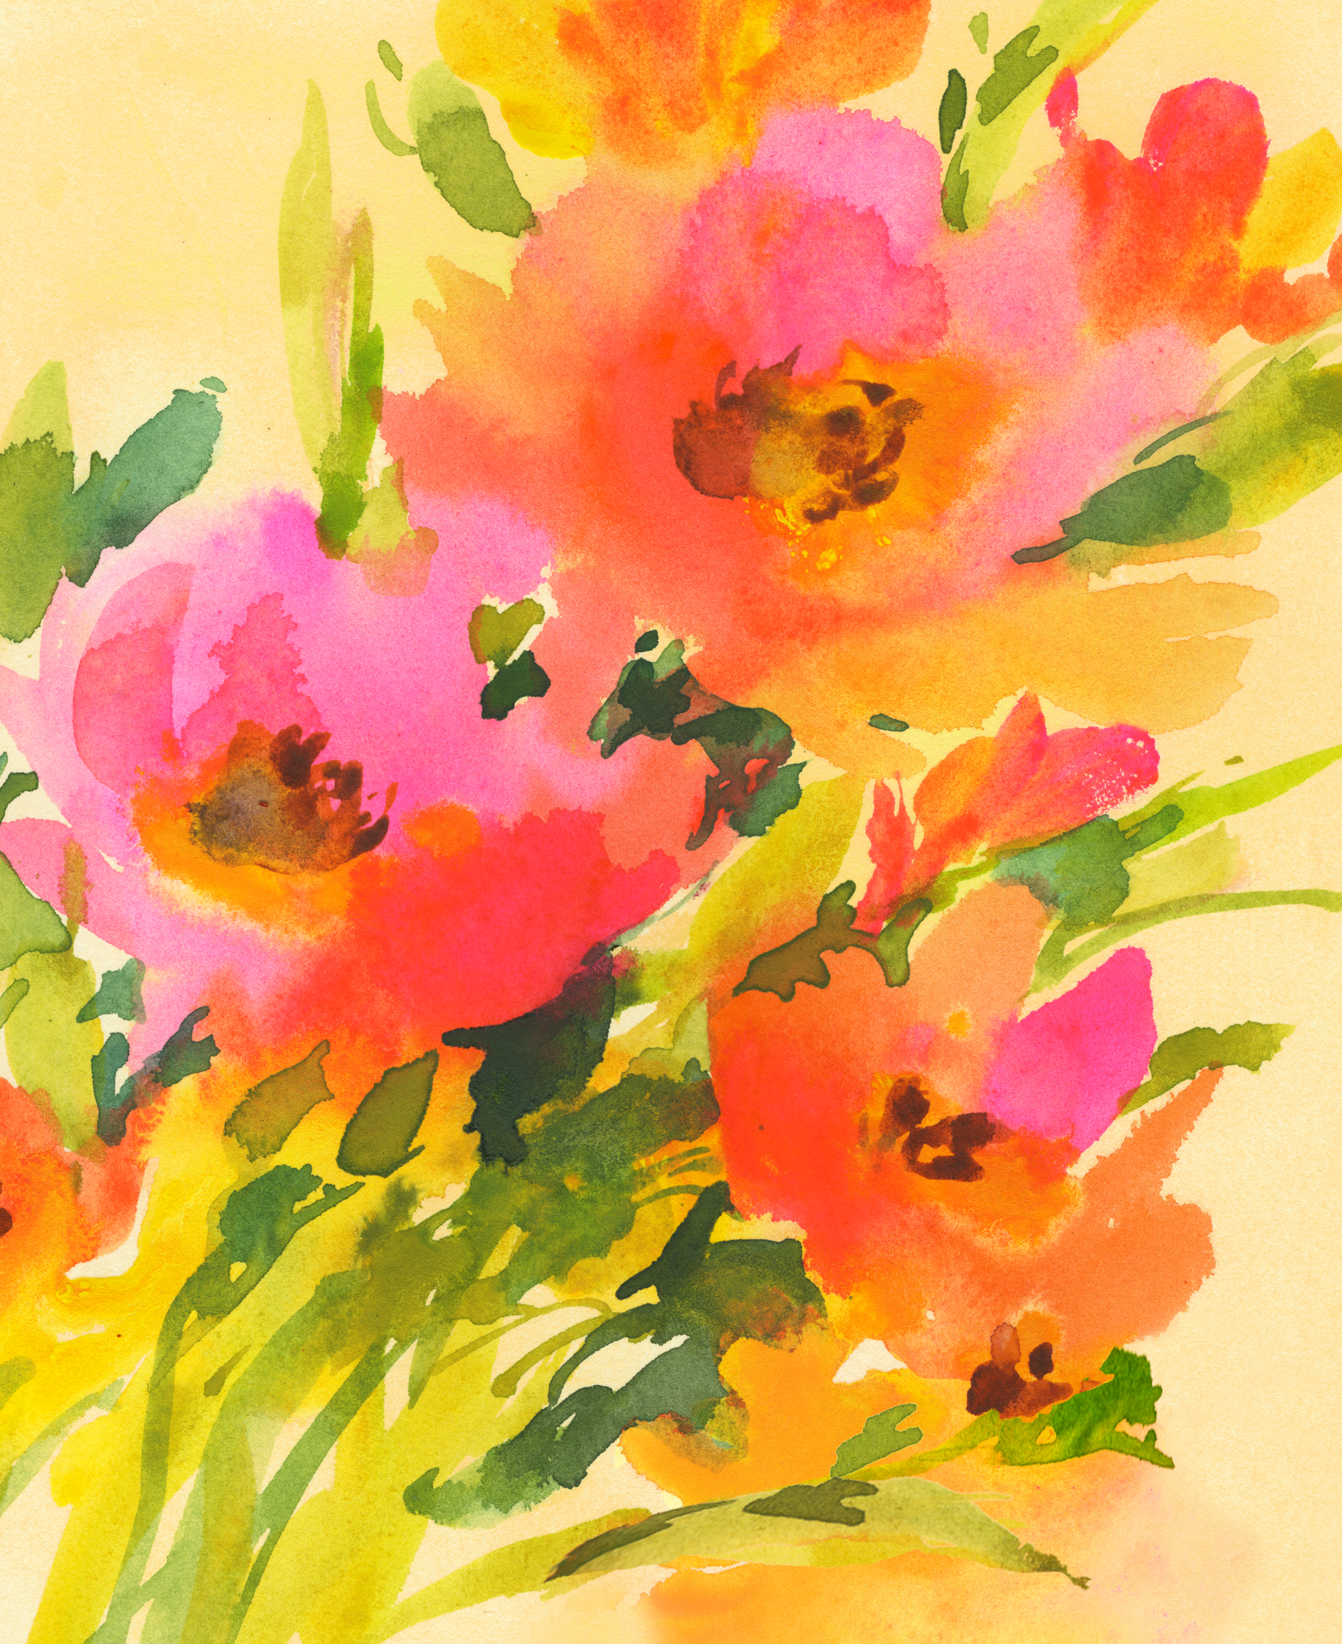 Orange-&-Pink-Poppies.jpg